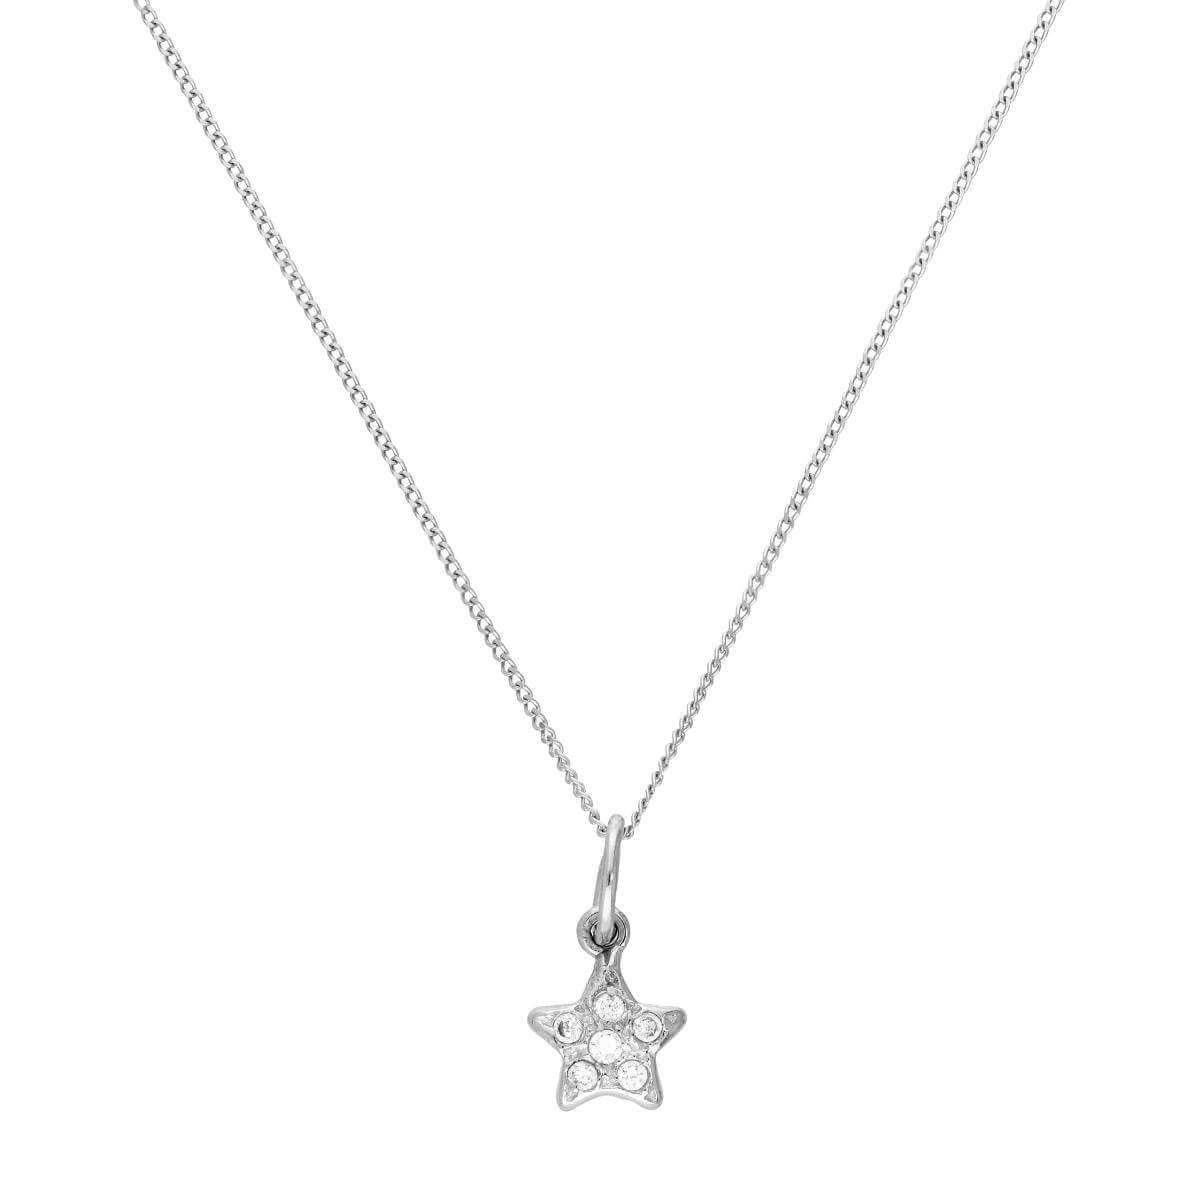 9ct White Gold & Clear CZ Crystal Star Pendant Necklace 16 - 20 Inches